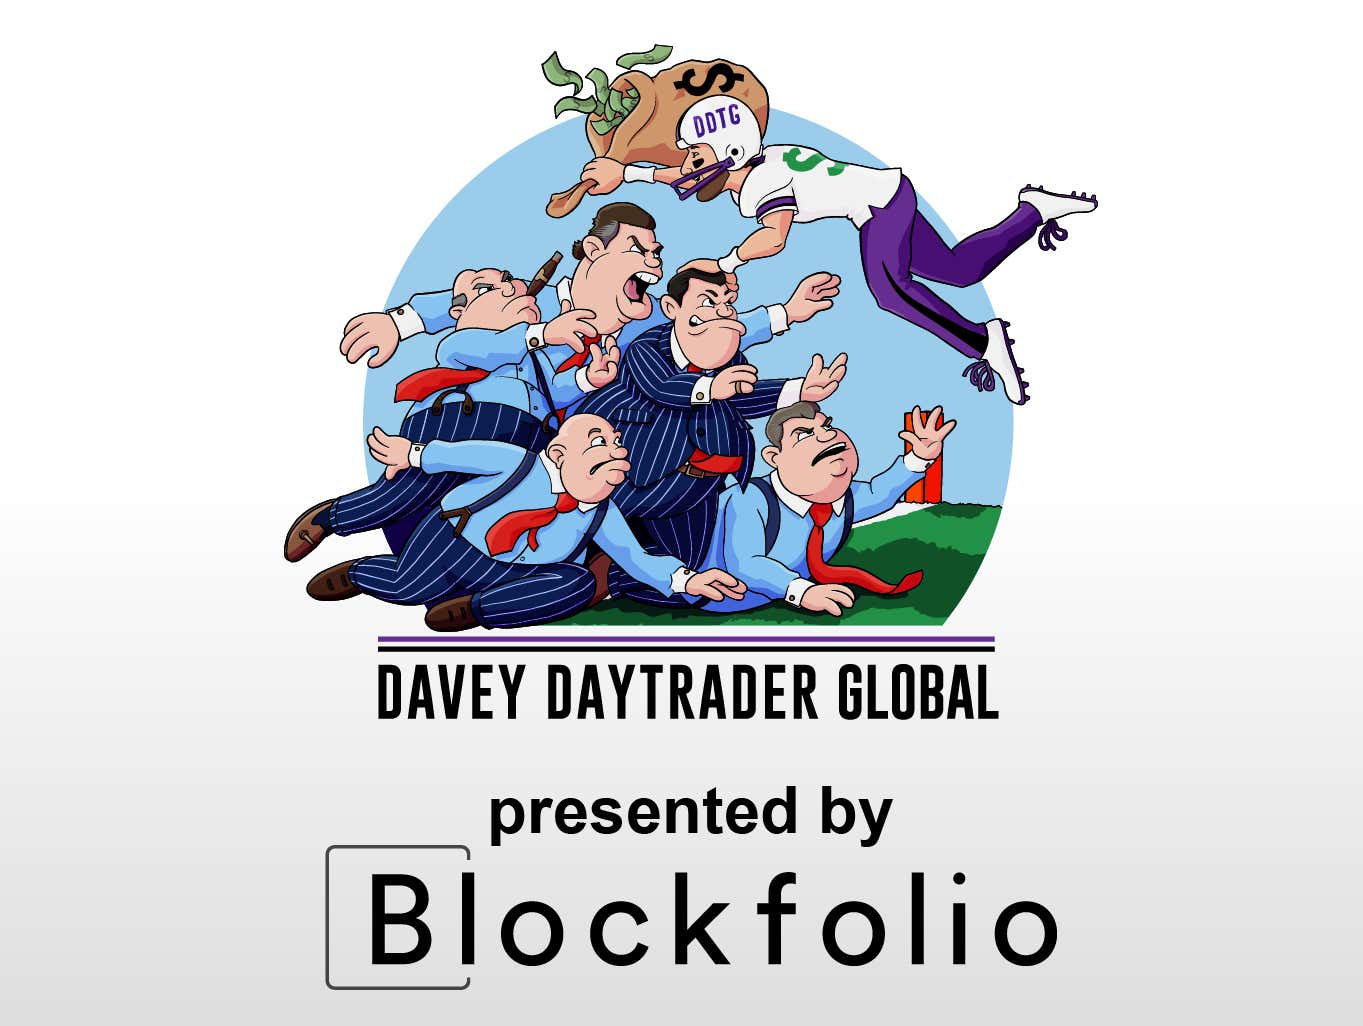 Davey Day Trader presented by Blockfolio - May 10, 2021